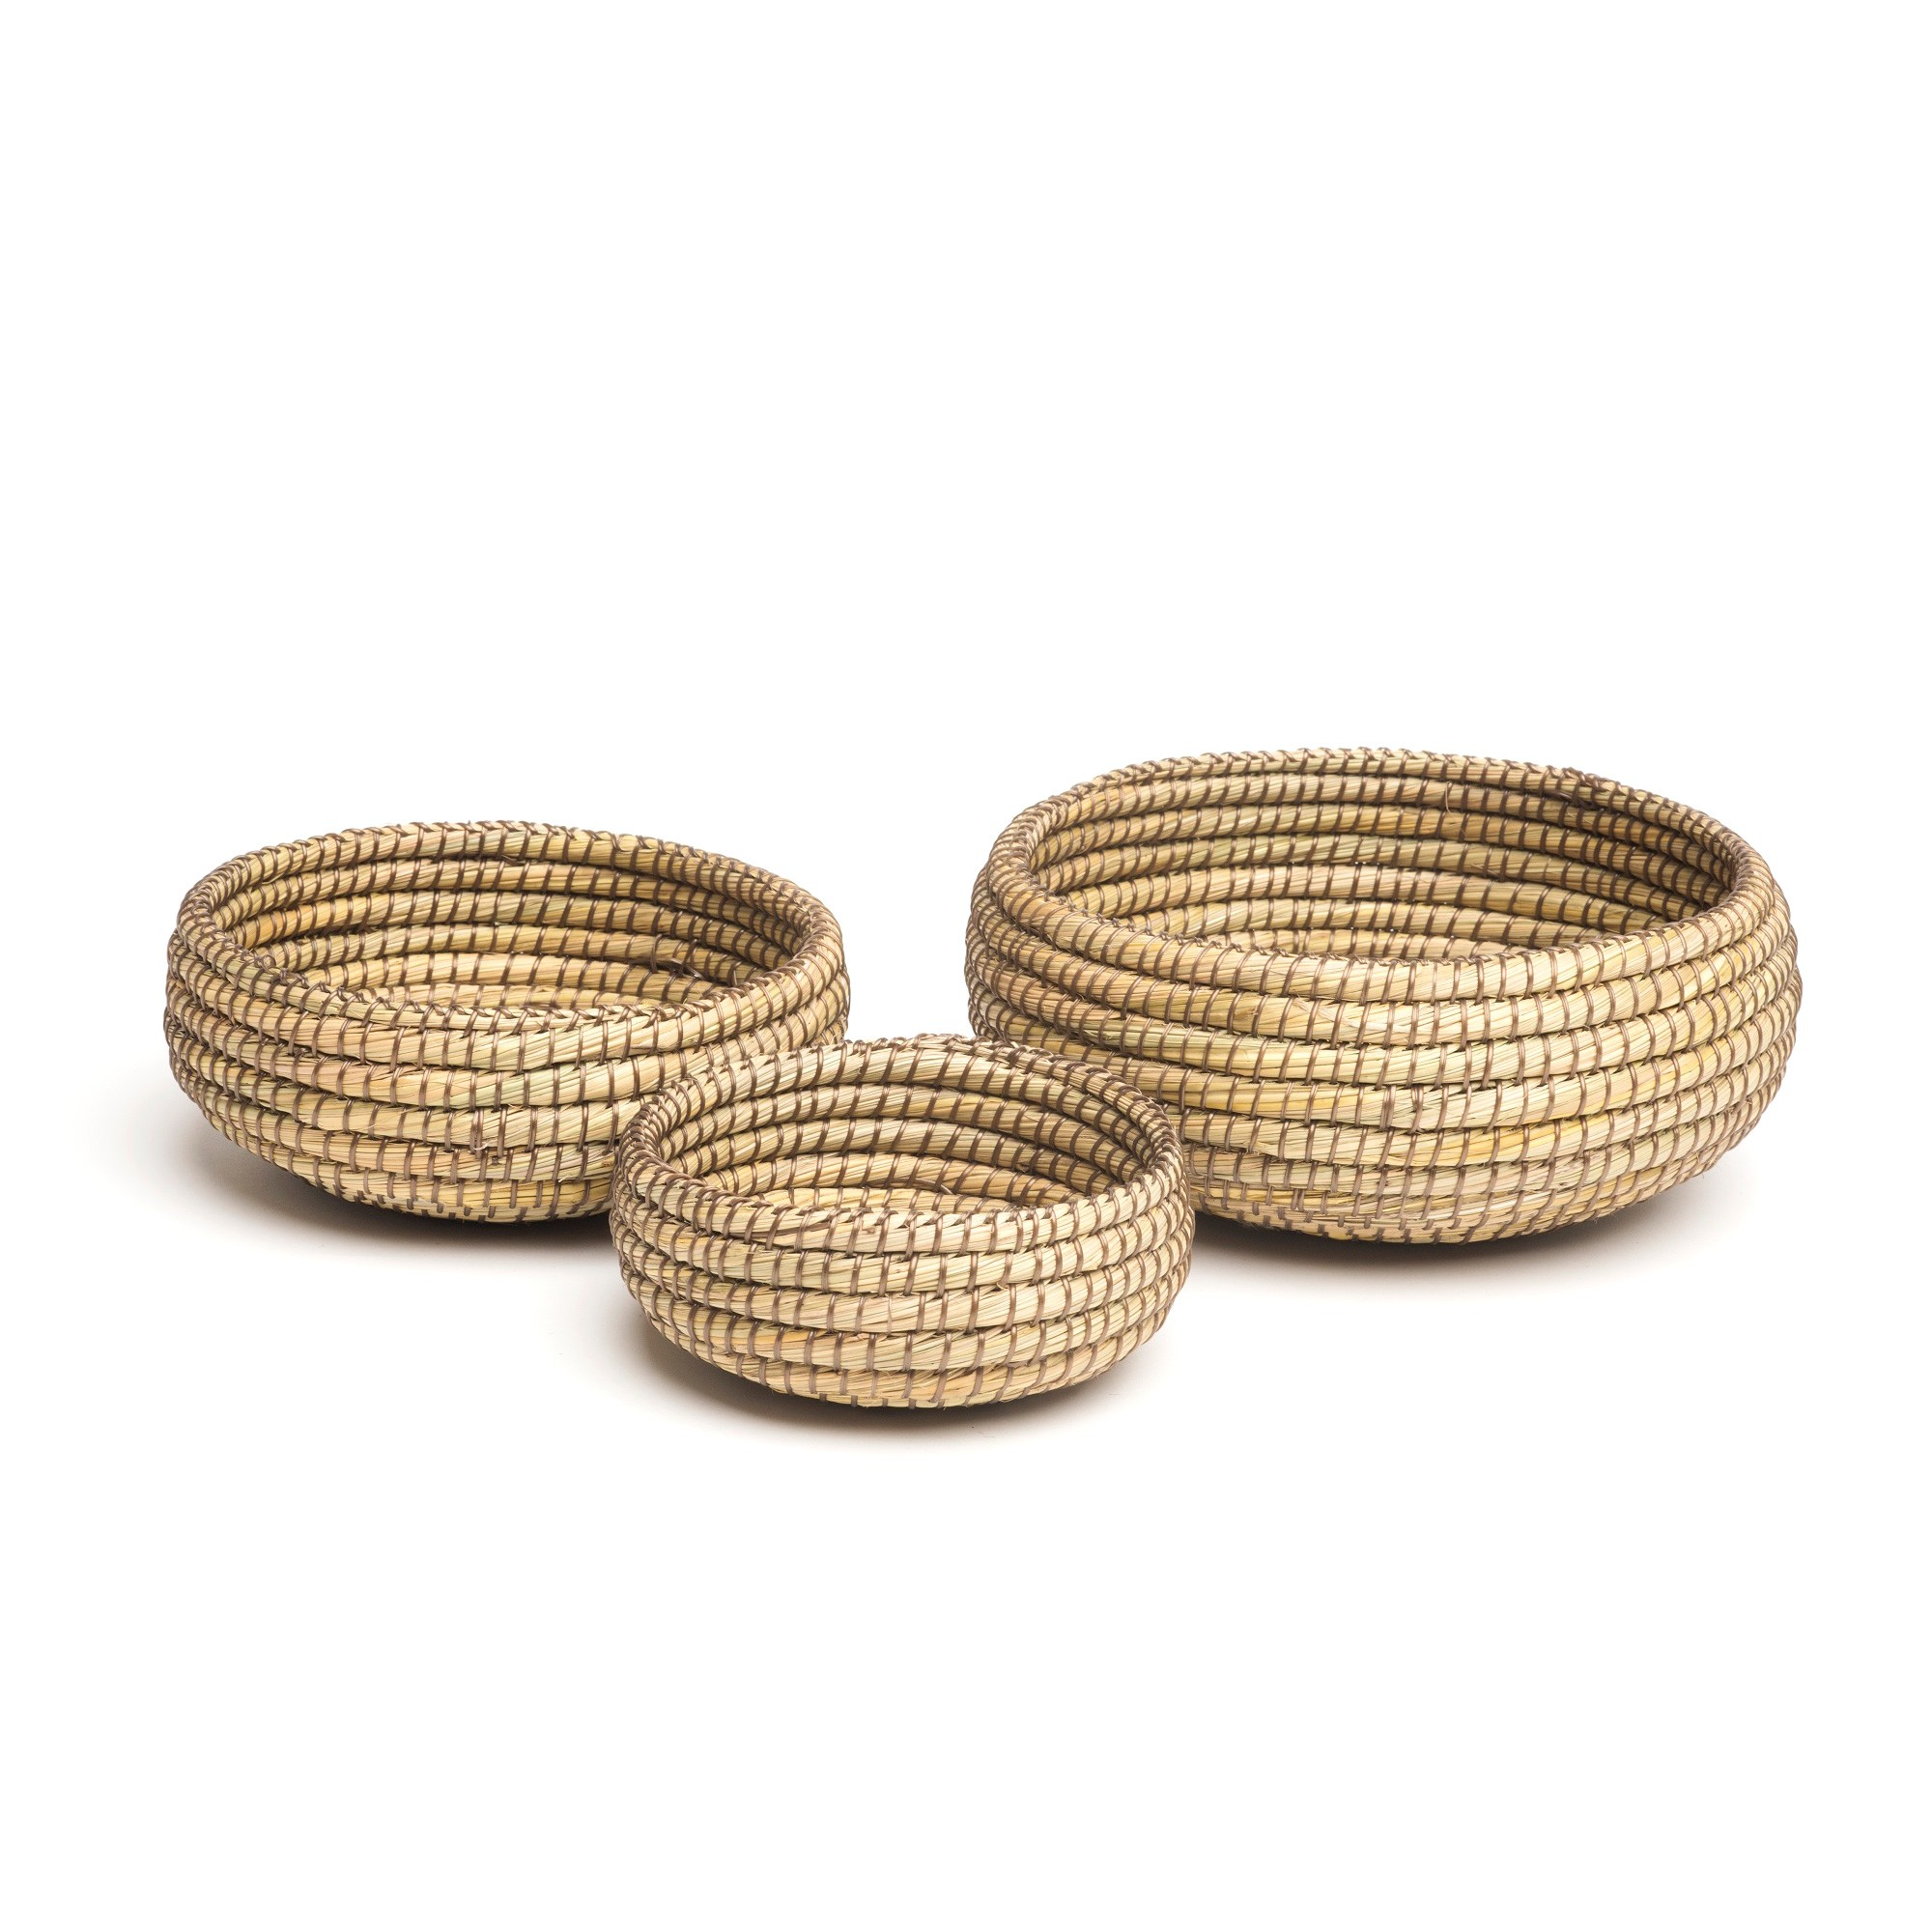 Kaisa 3 Piece Handmade Kaisa Grass Basket Set